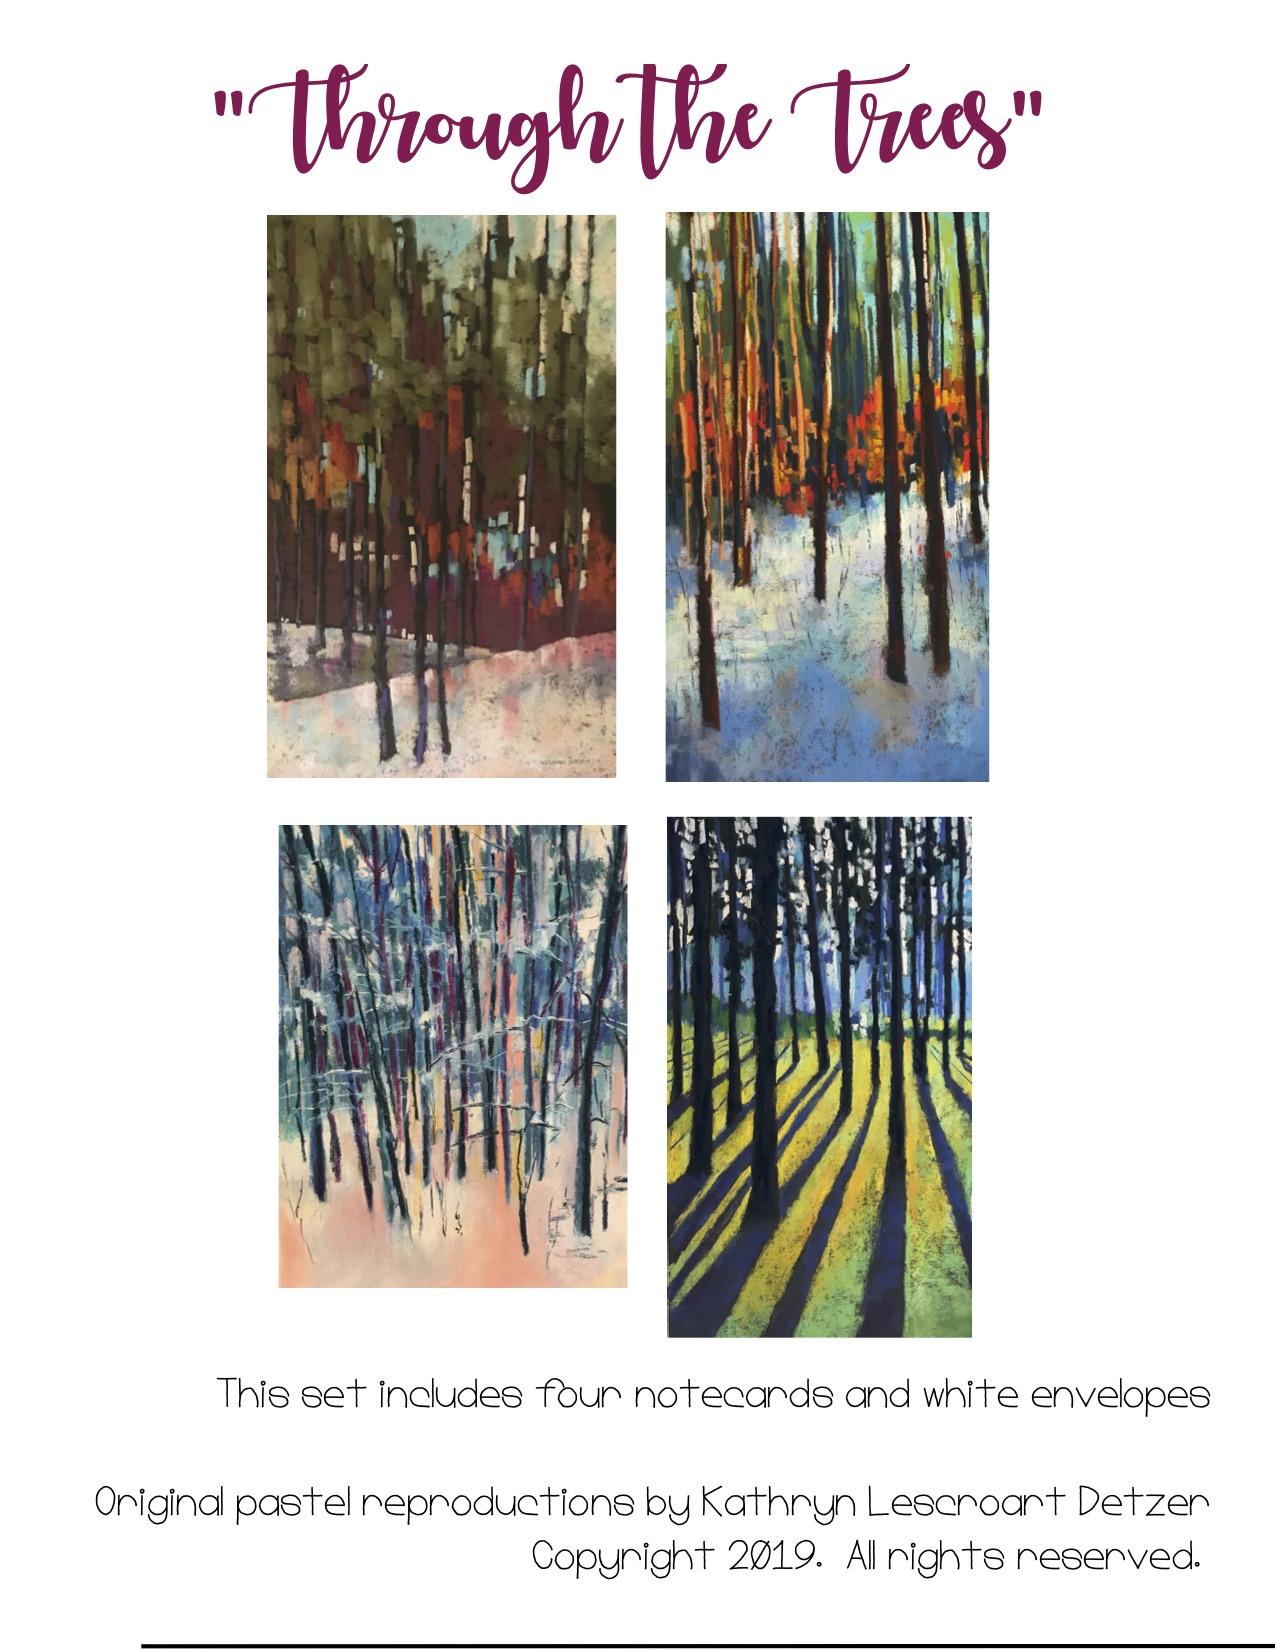 Through the trees - Notecards - Set includes 4 notecards, blank inside and four envelopes. $10